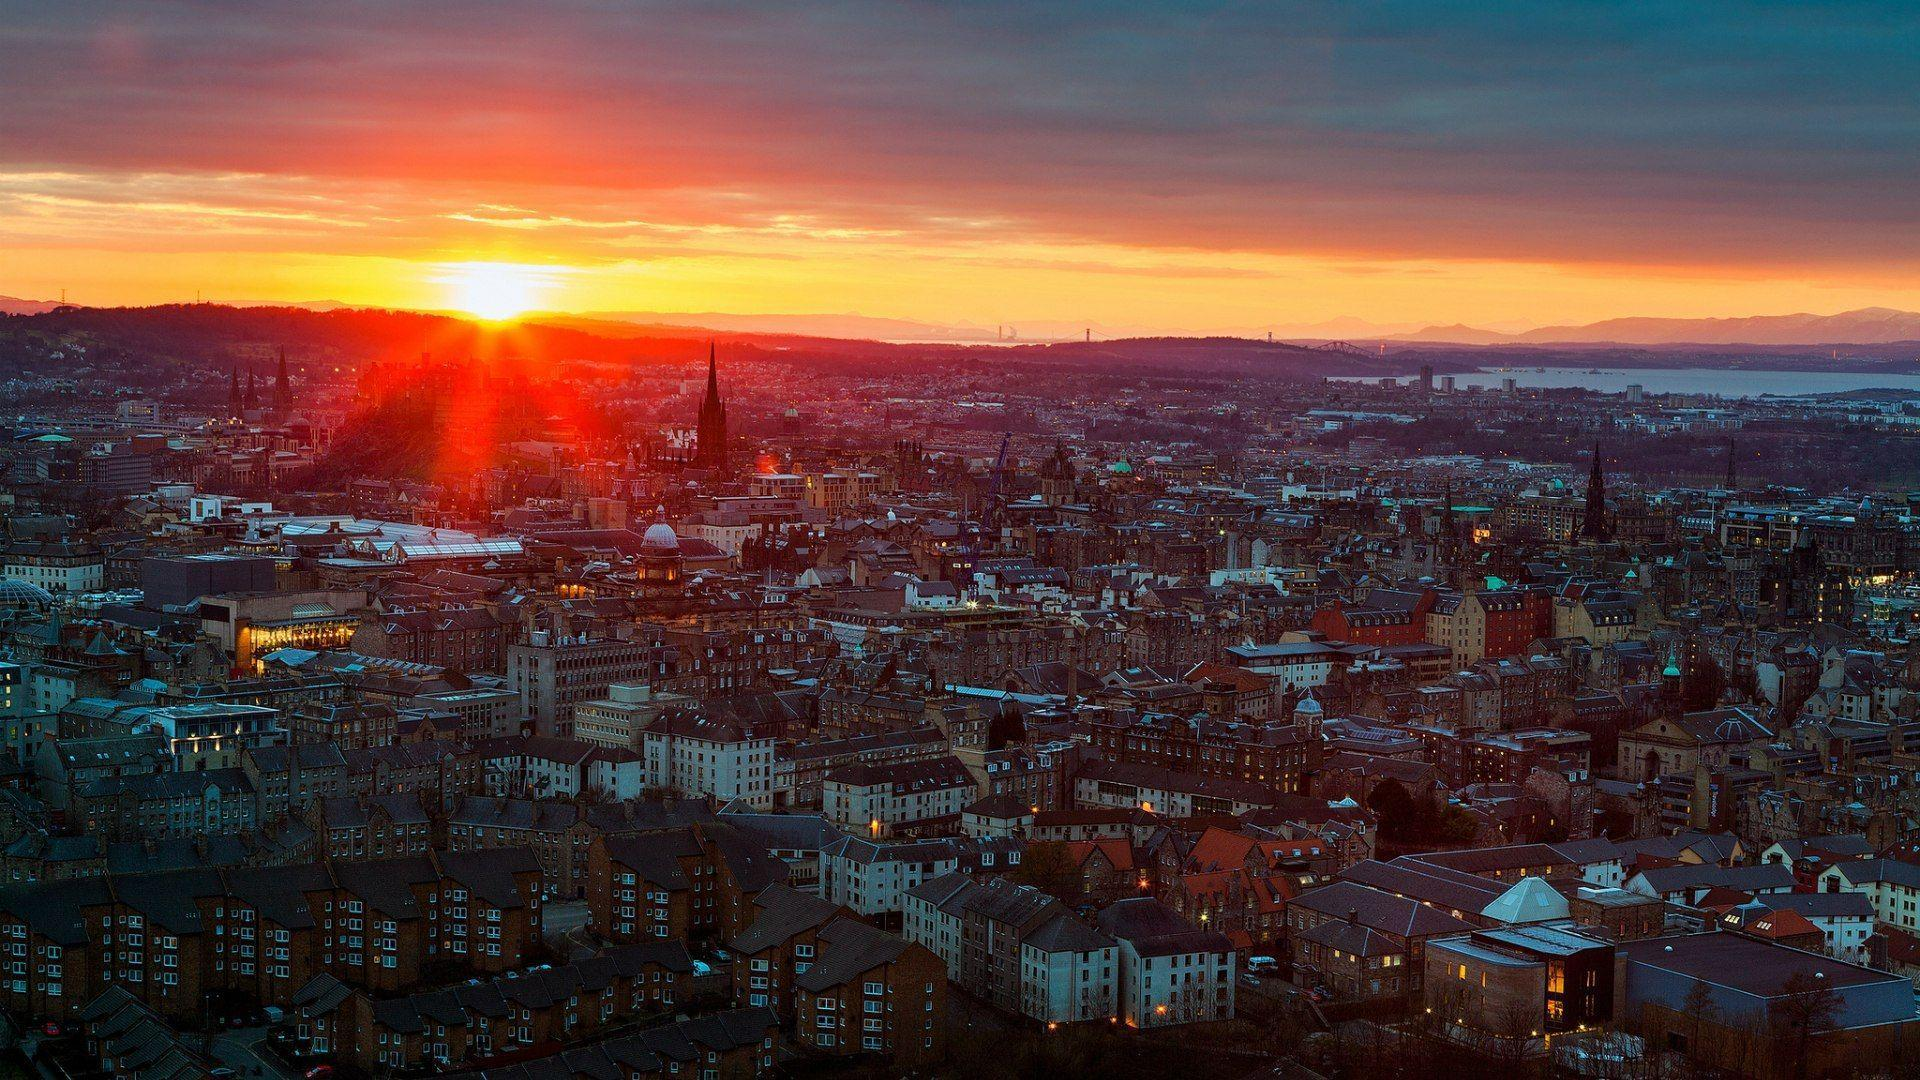 Sunset in Edinburgh, Scotland wallpapers and images - wallpapers ...